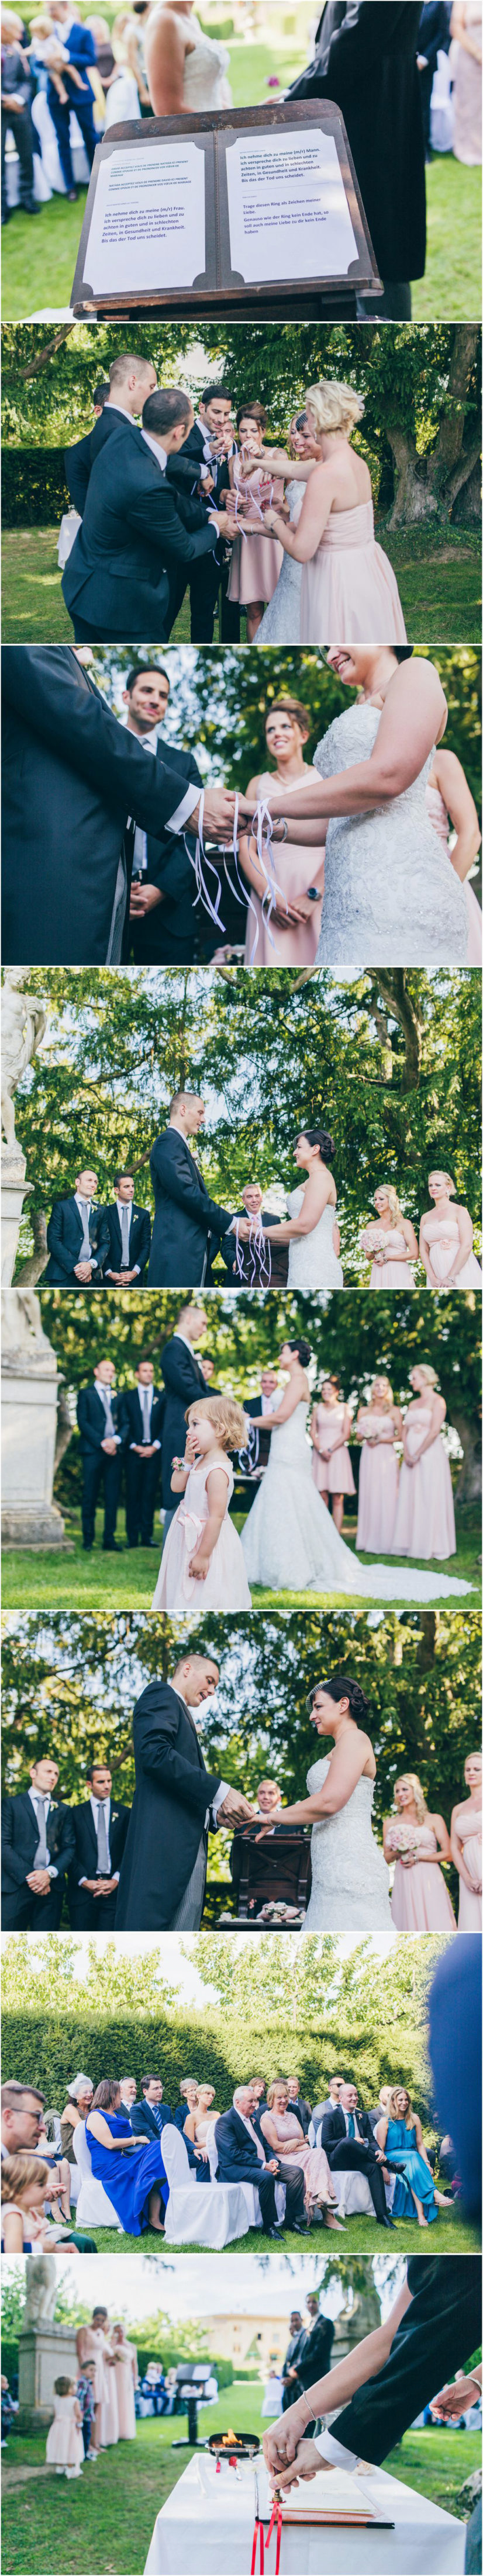 French wedding photographer ceremony chateau Bagnols Burgundy France